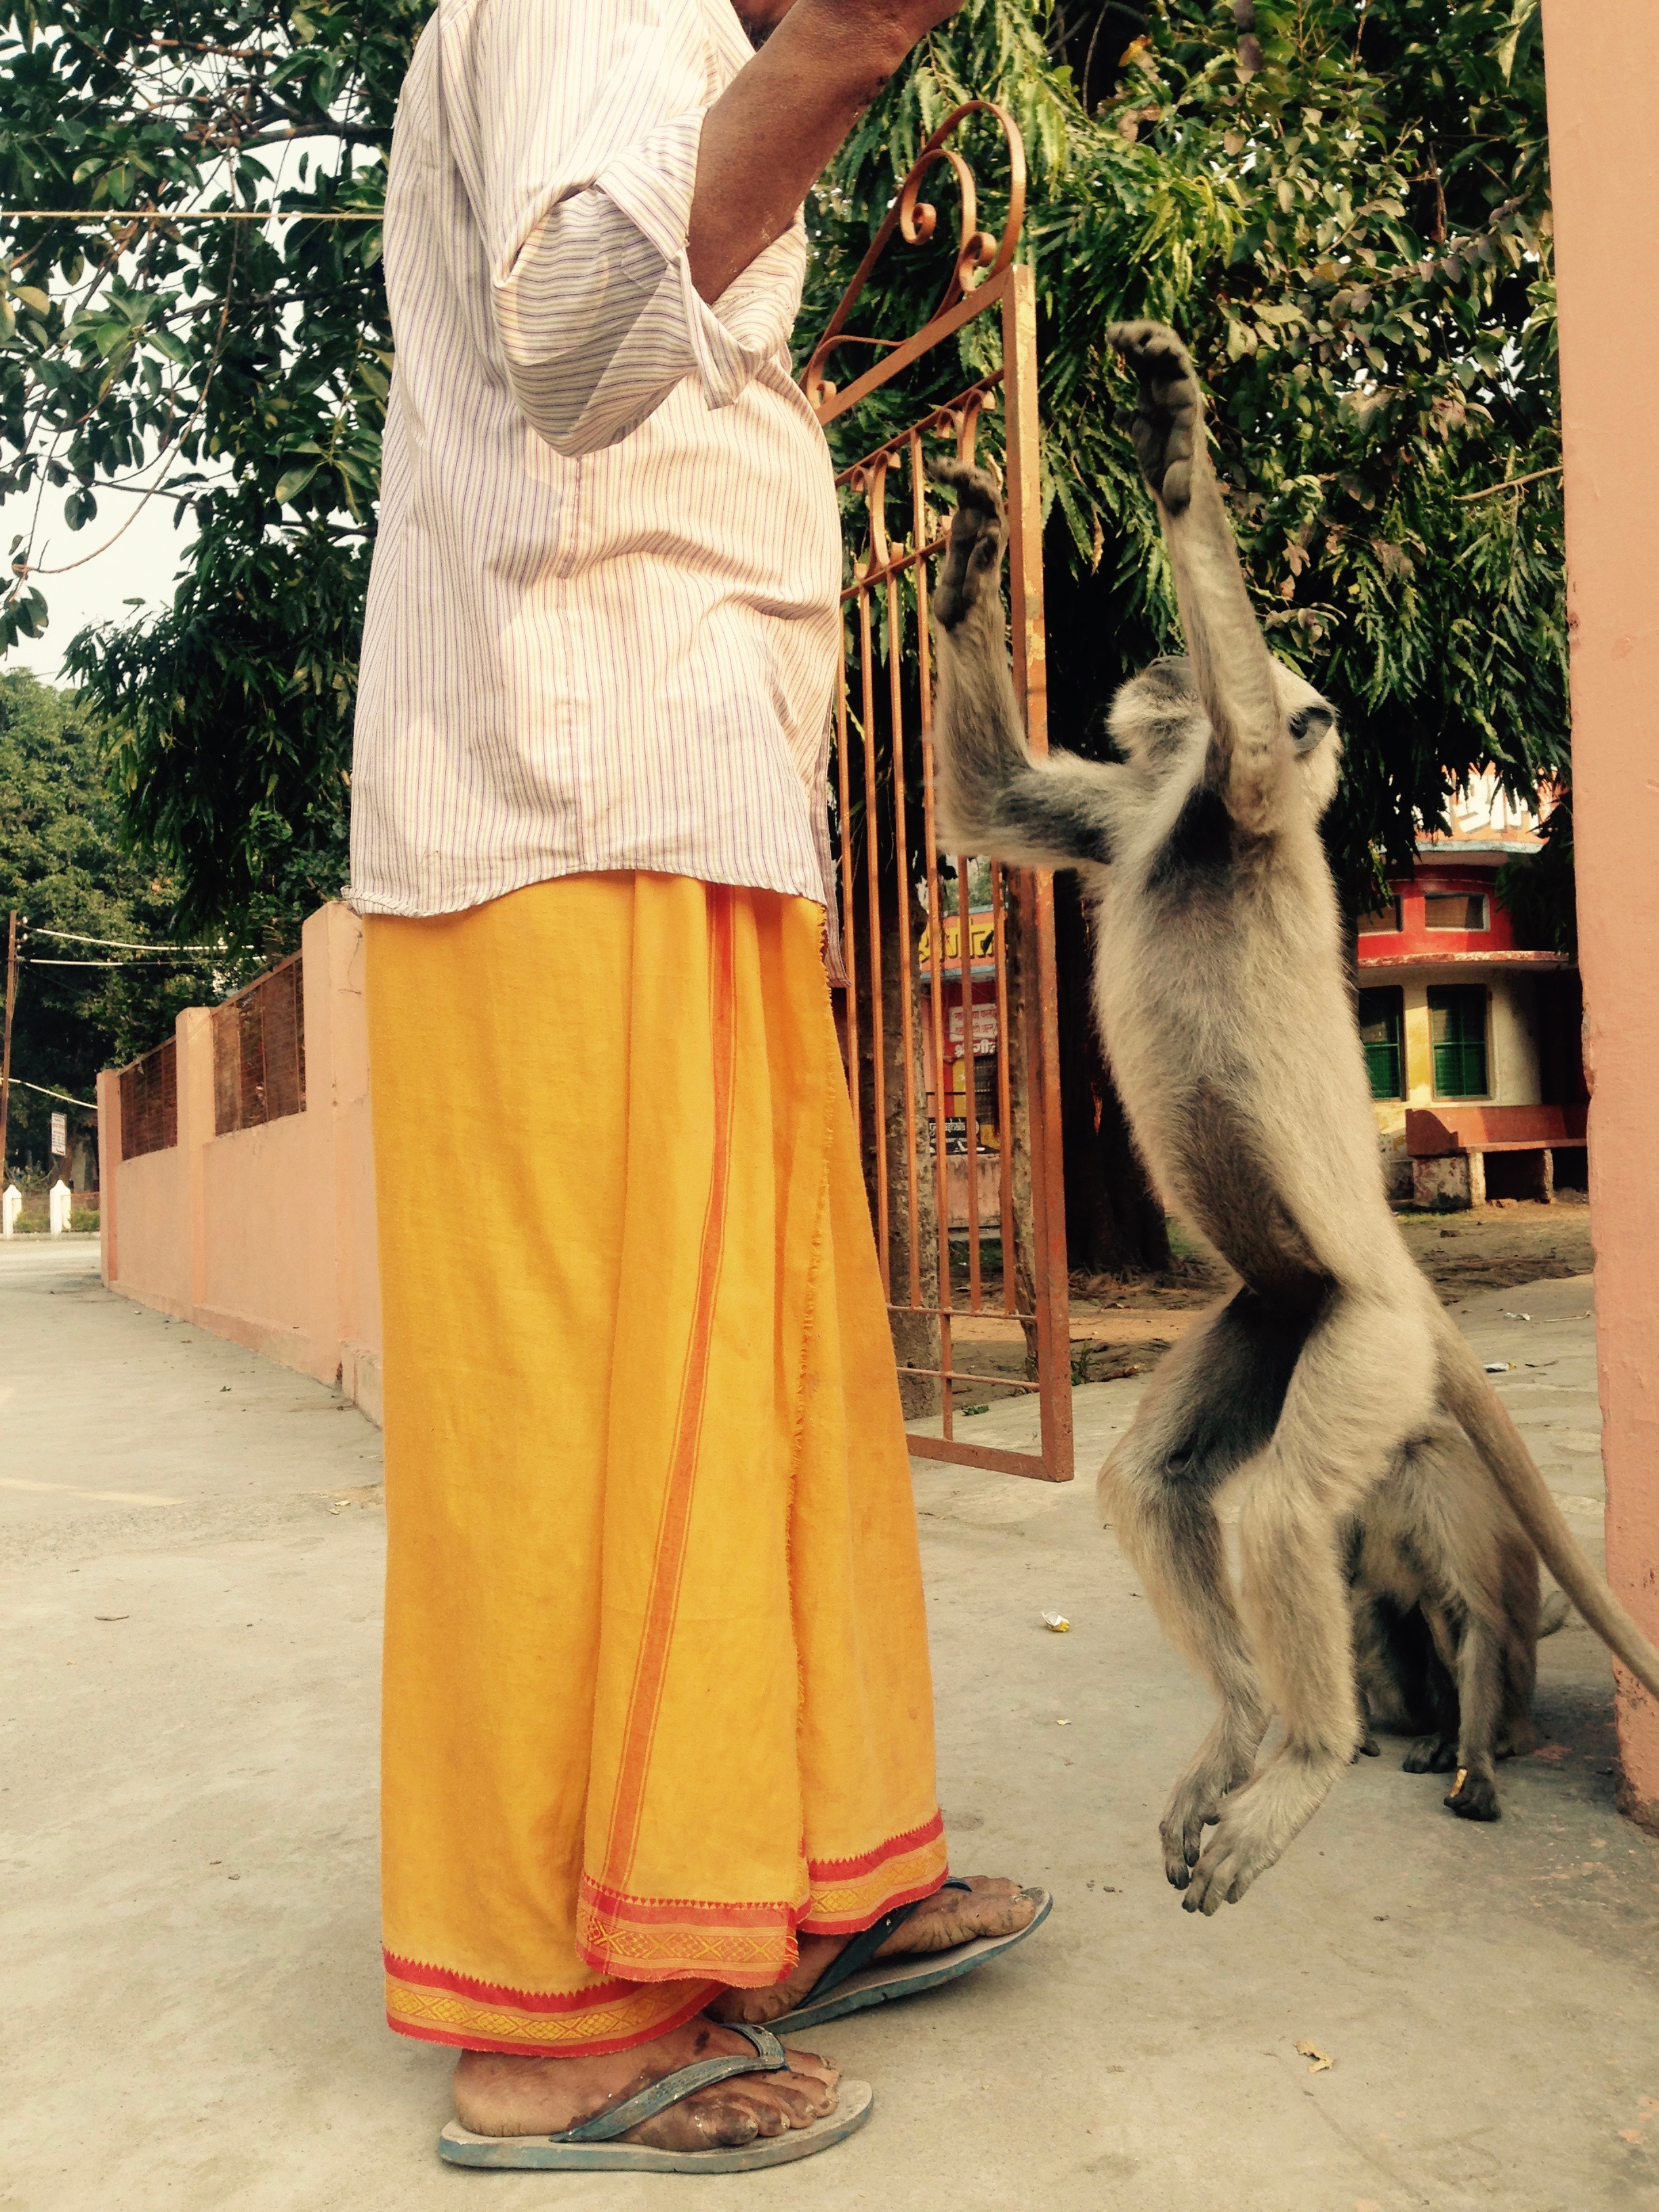 Ashram baba treating a languor to some biscuits. Naturally, I had to stop and watch.